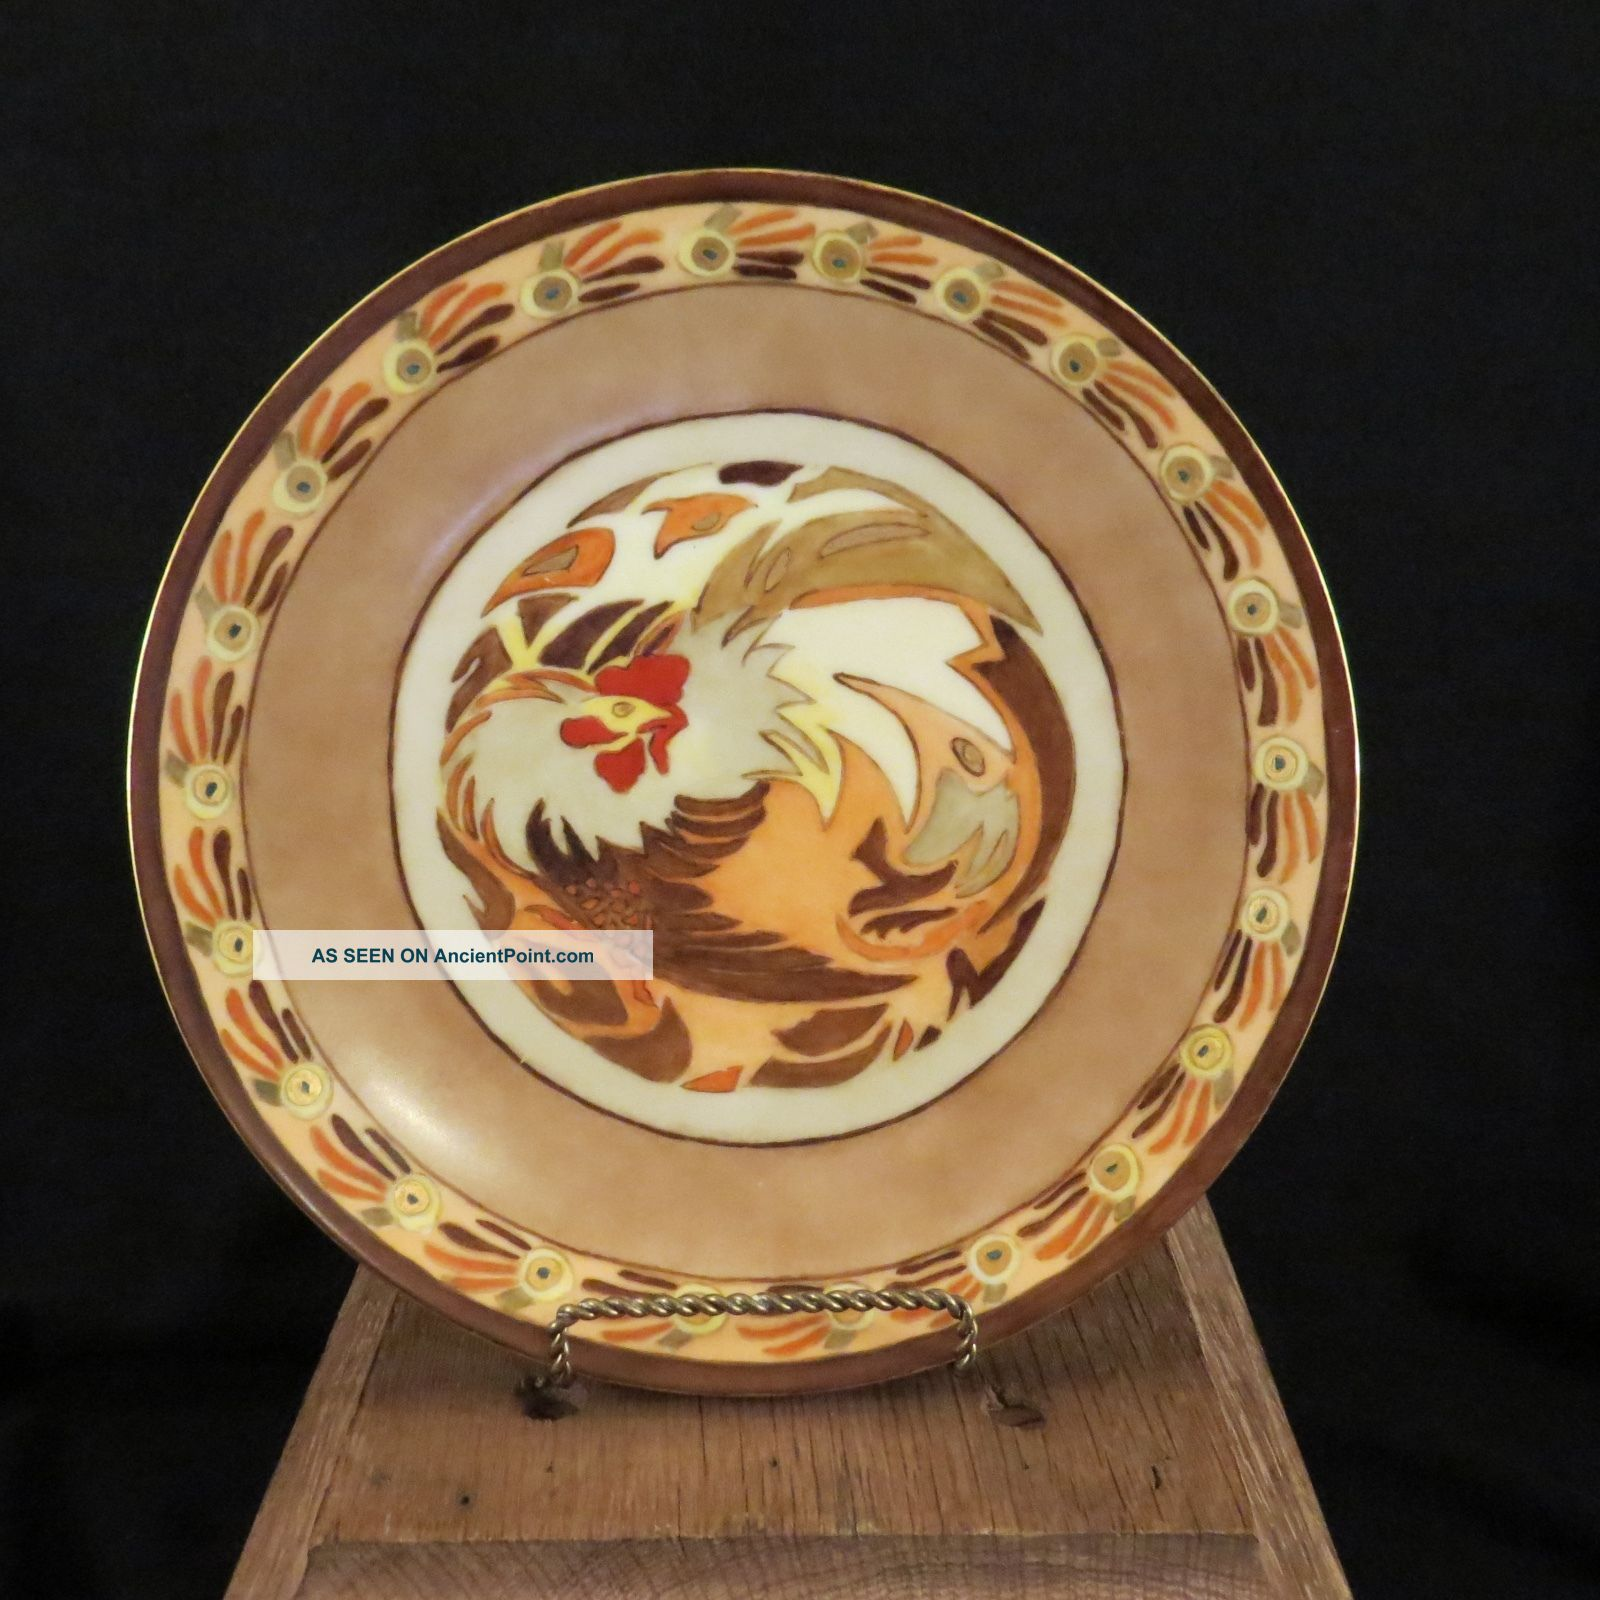 Vintage Abstract Rooster Hand - Painted Plate Thomas Bavaria Artist Signed 1925 Plates & Chargers photo